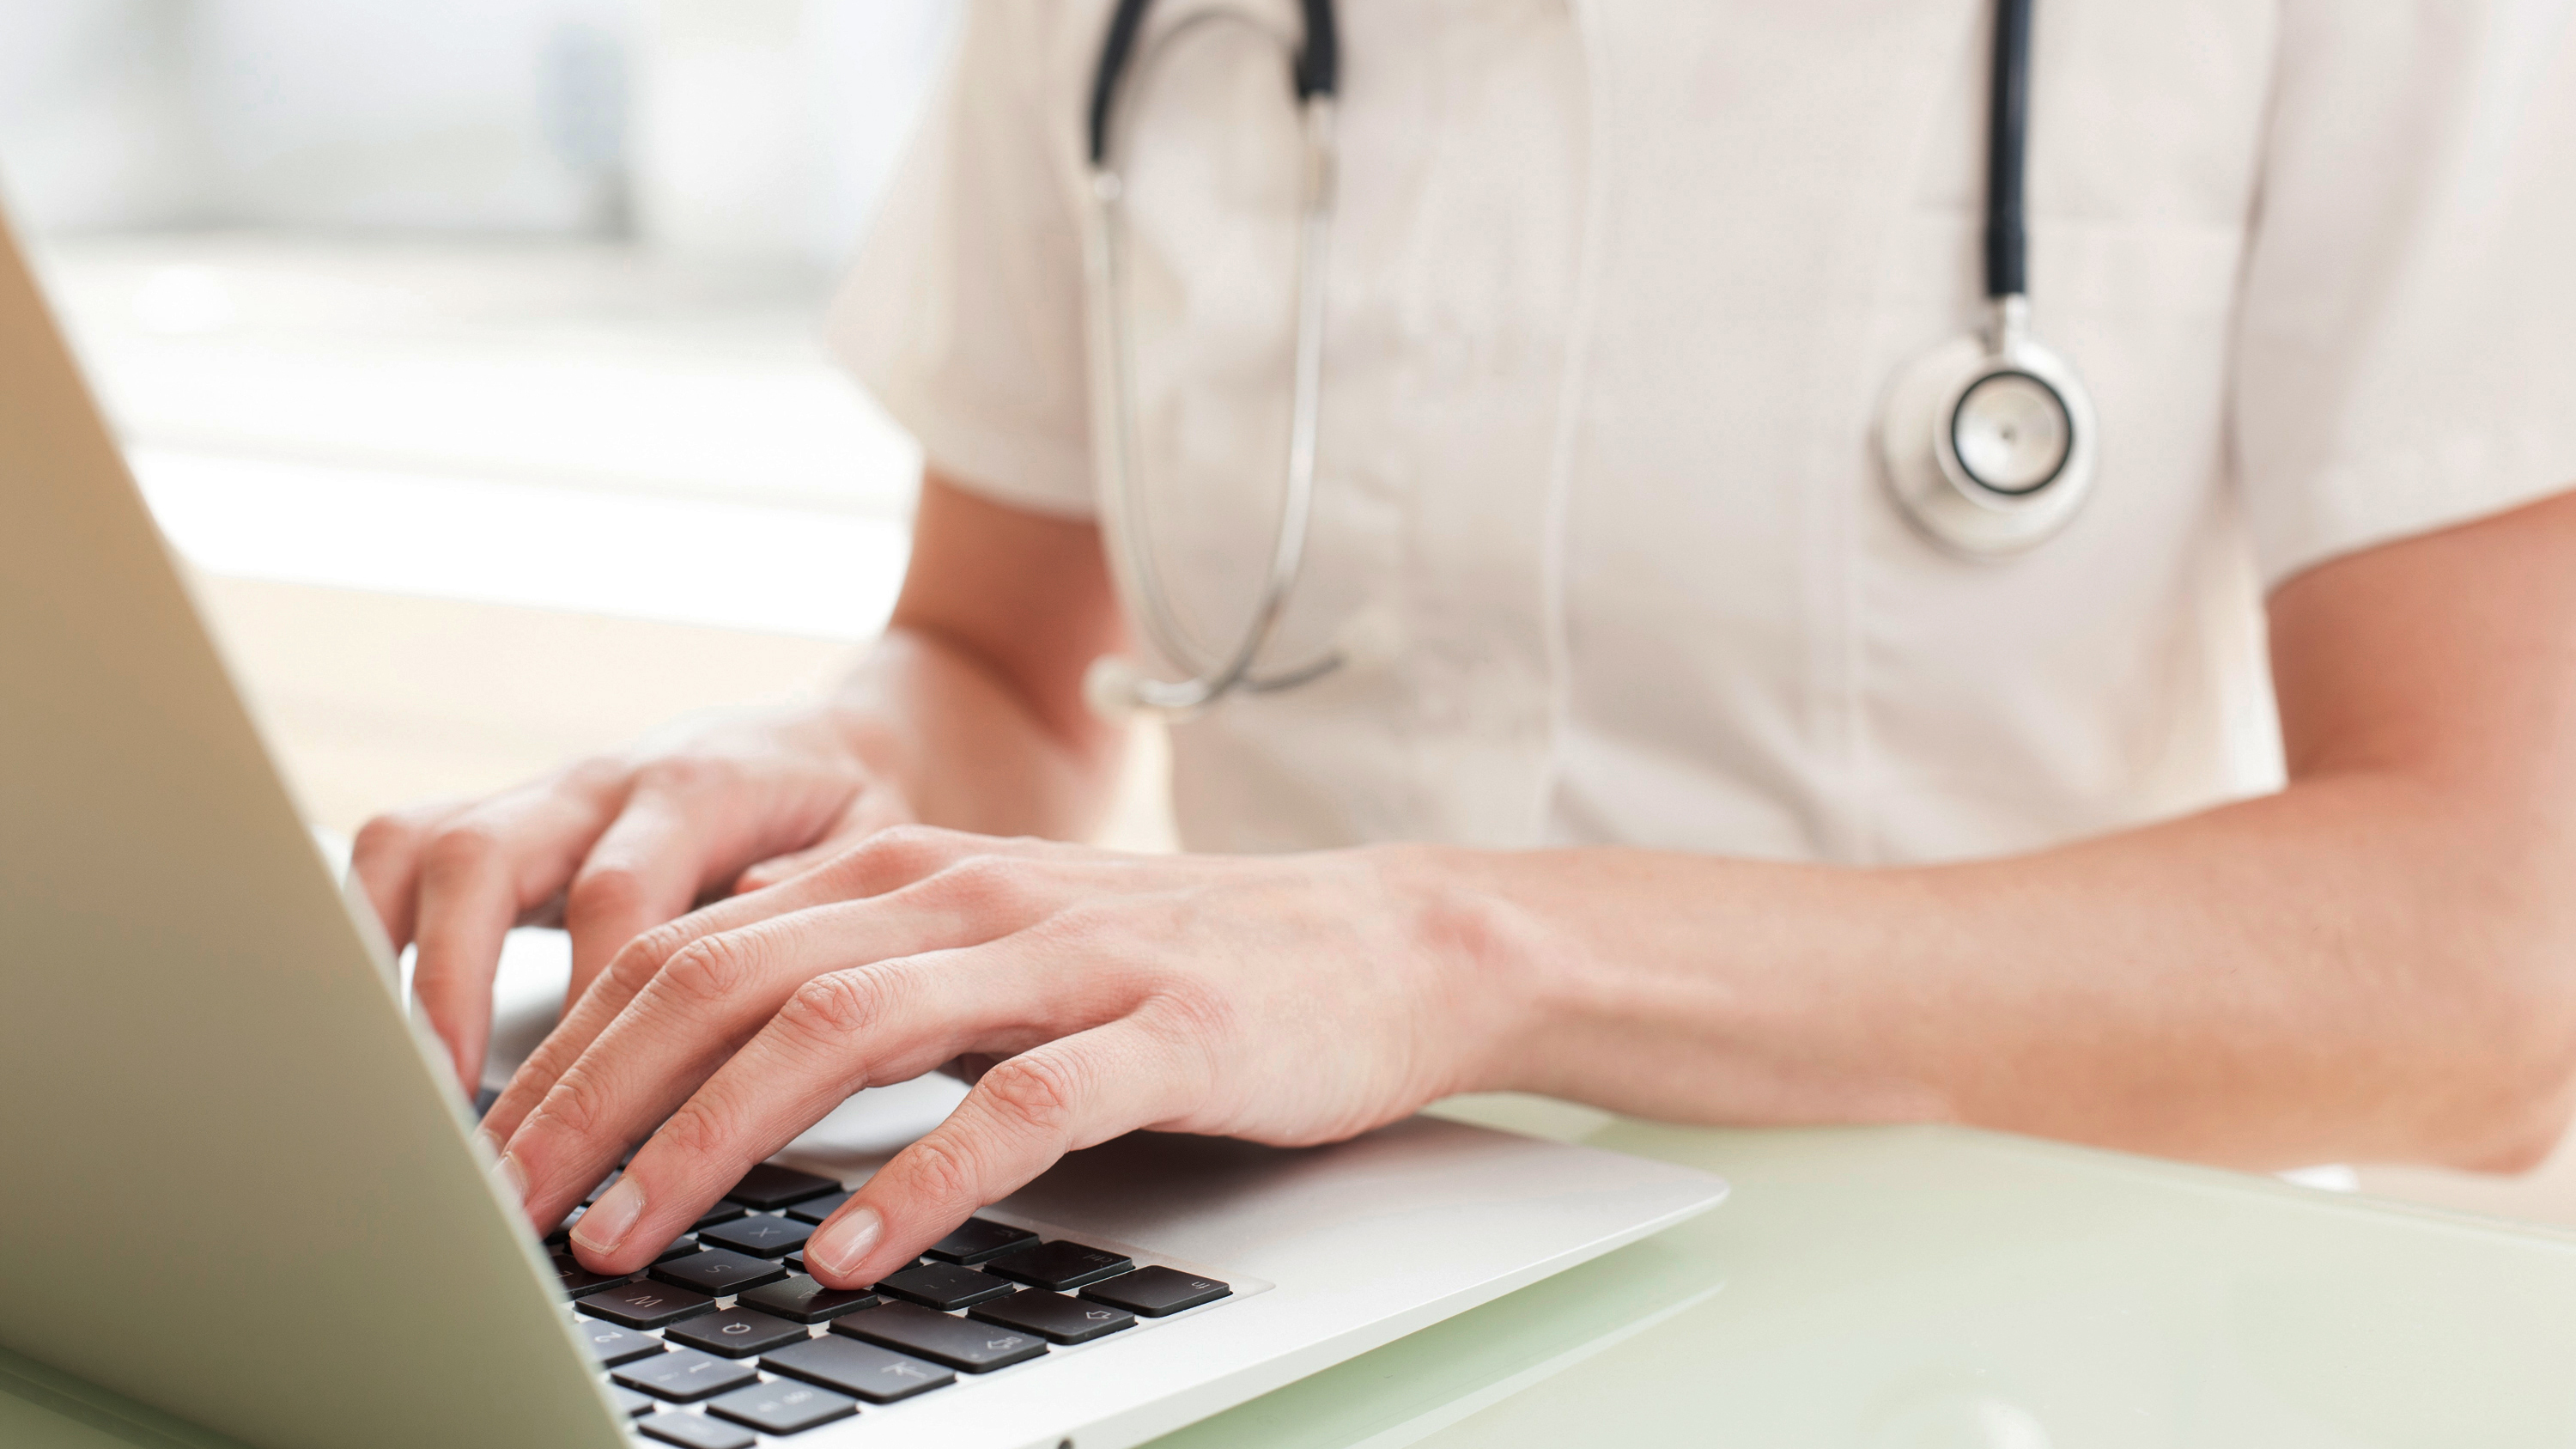 A January report found that 40% of U.S. counties don't have a single health care provider approved to prescribe buprenorphine, a medicine integral to helping many patients beat opioid addiction. Permitting more-distant doctors to evaluate patients online and prescribe the medicine is a welcome advance, say addiction specialists.